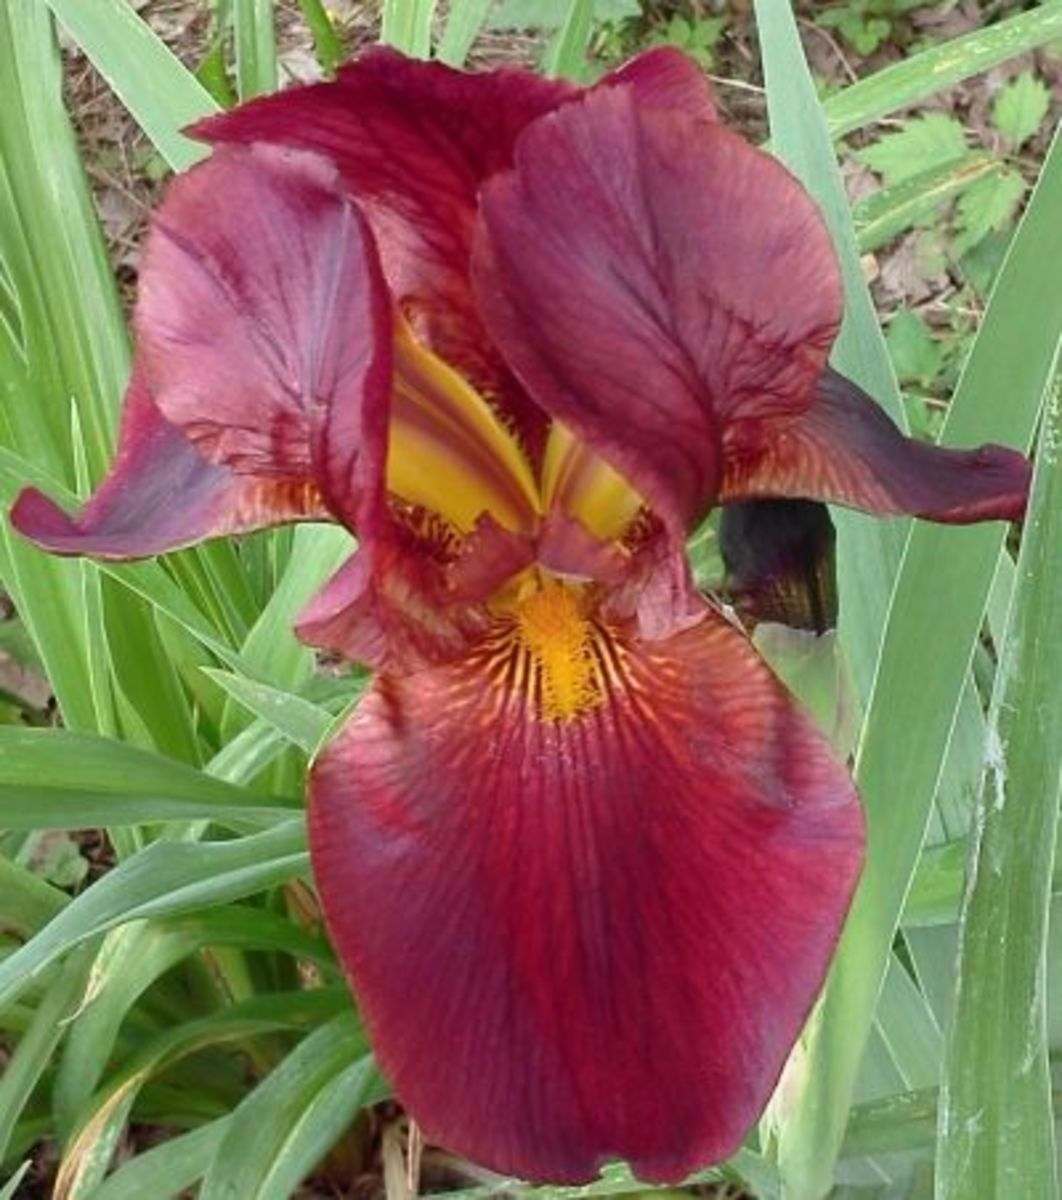 Maroon bearded iris.